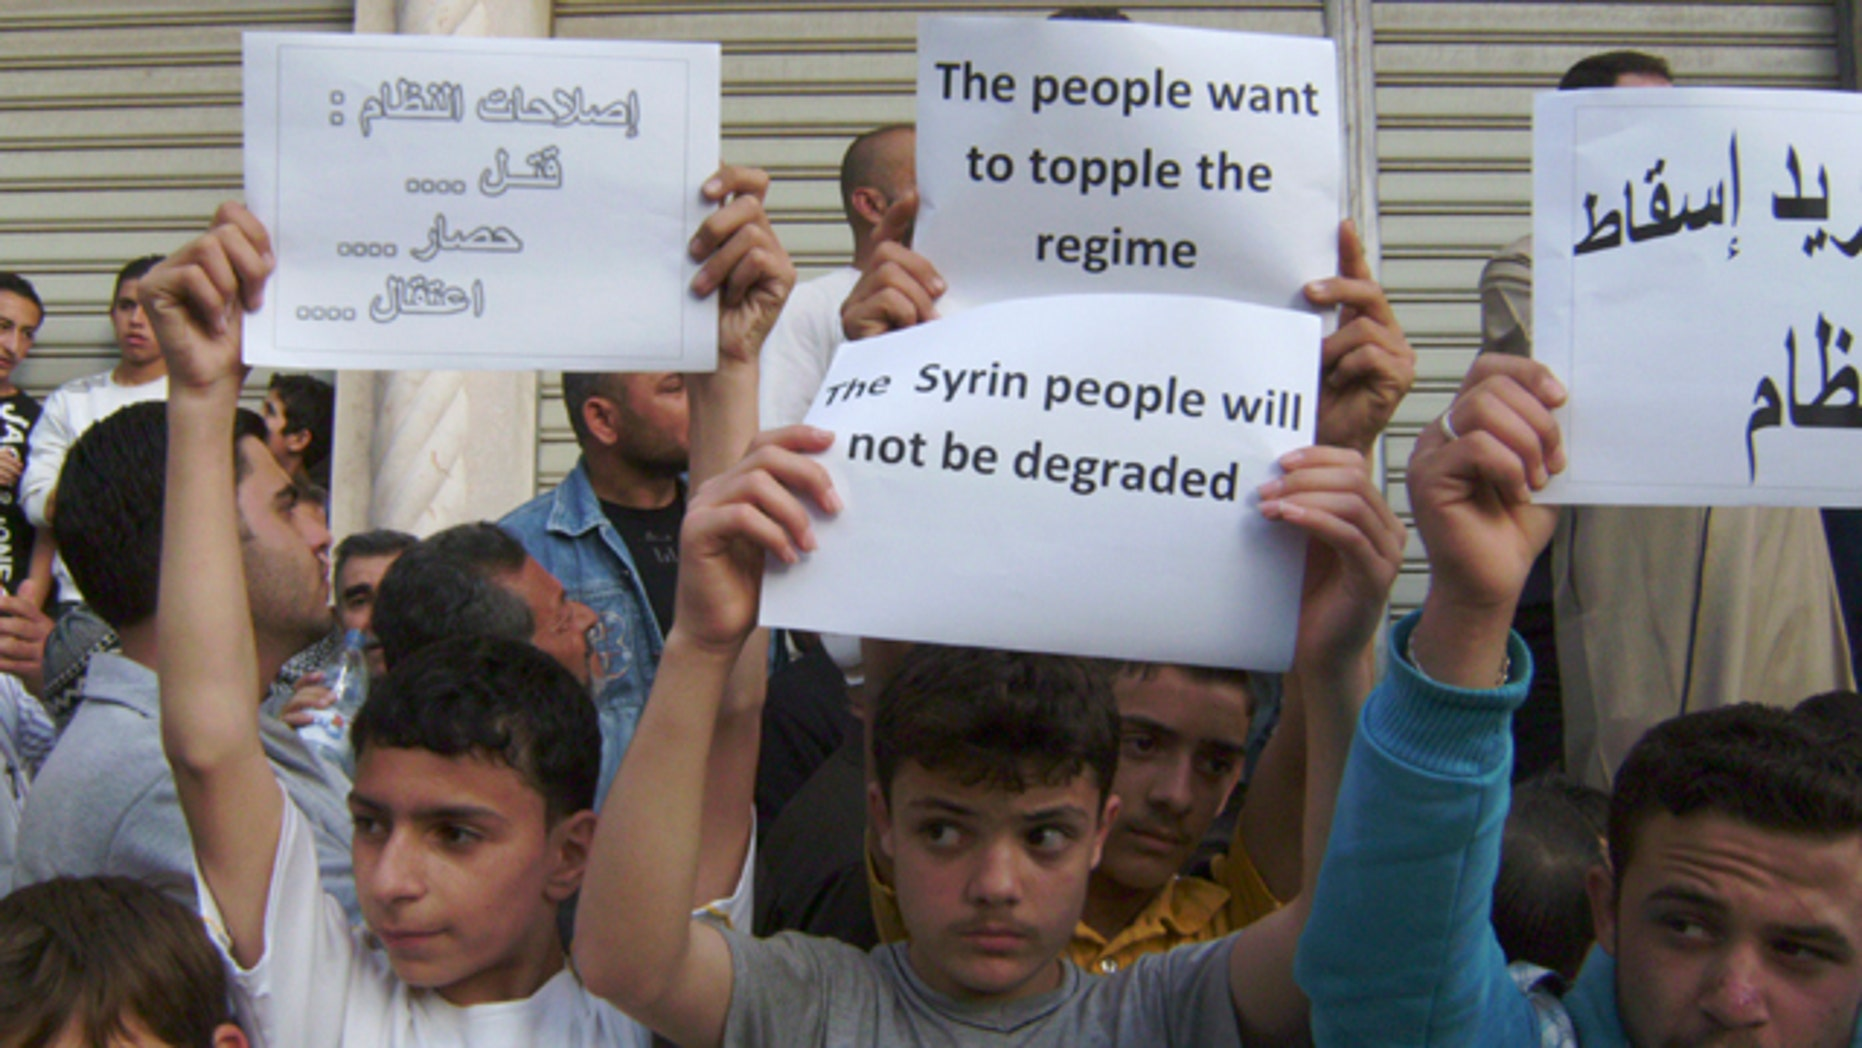 May 5, 2011: In this citizen journalism image made on a mobile phone and acquired by the AP, Syrians carry banners during a protest against the regime of President Assad, in the coastal town of Banias, Syria.